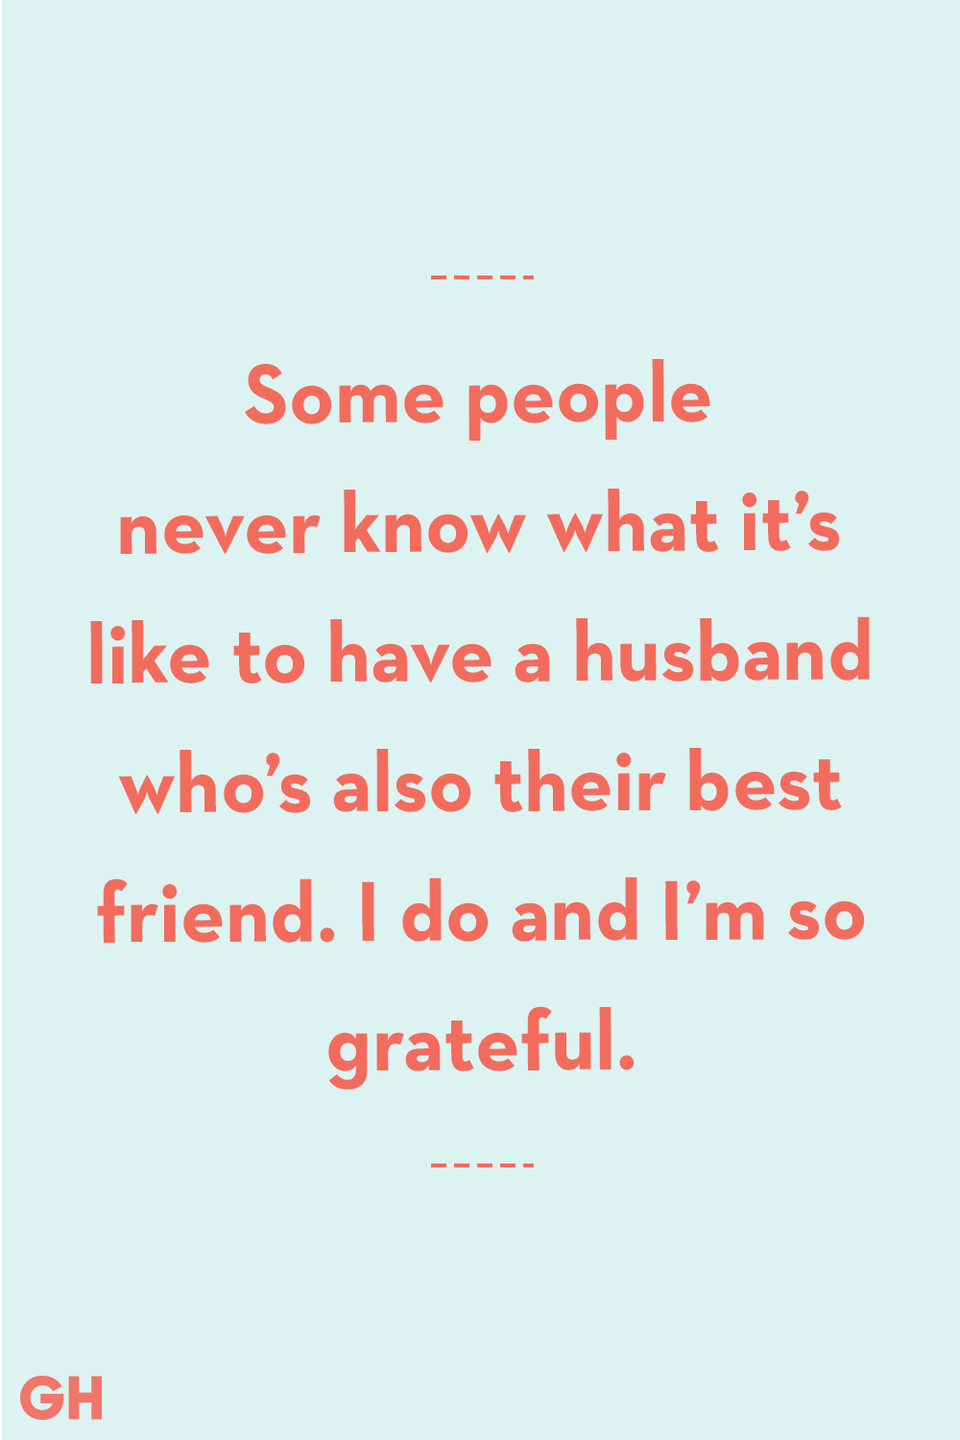 <p>Some people never know what it's like to have a husband who's also their best friend. I do and I'm so grateful.</p>